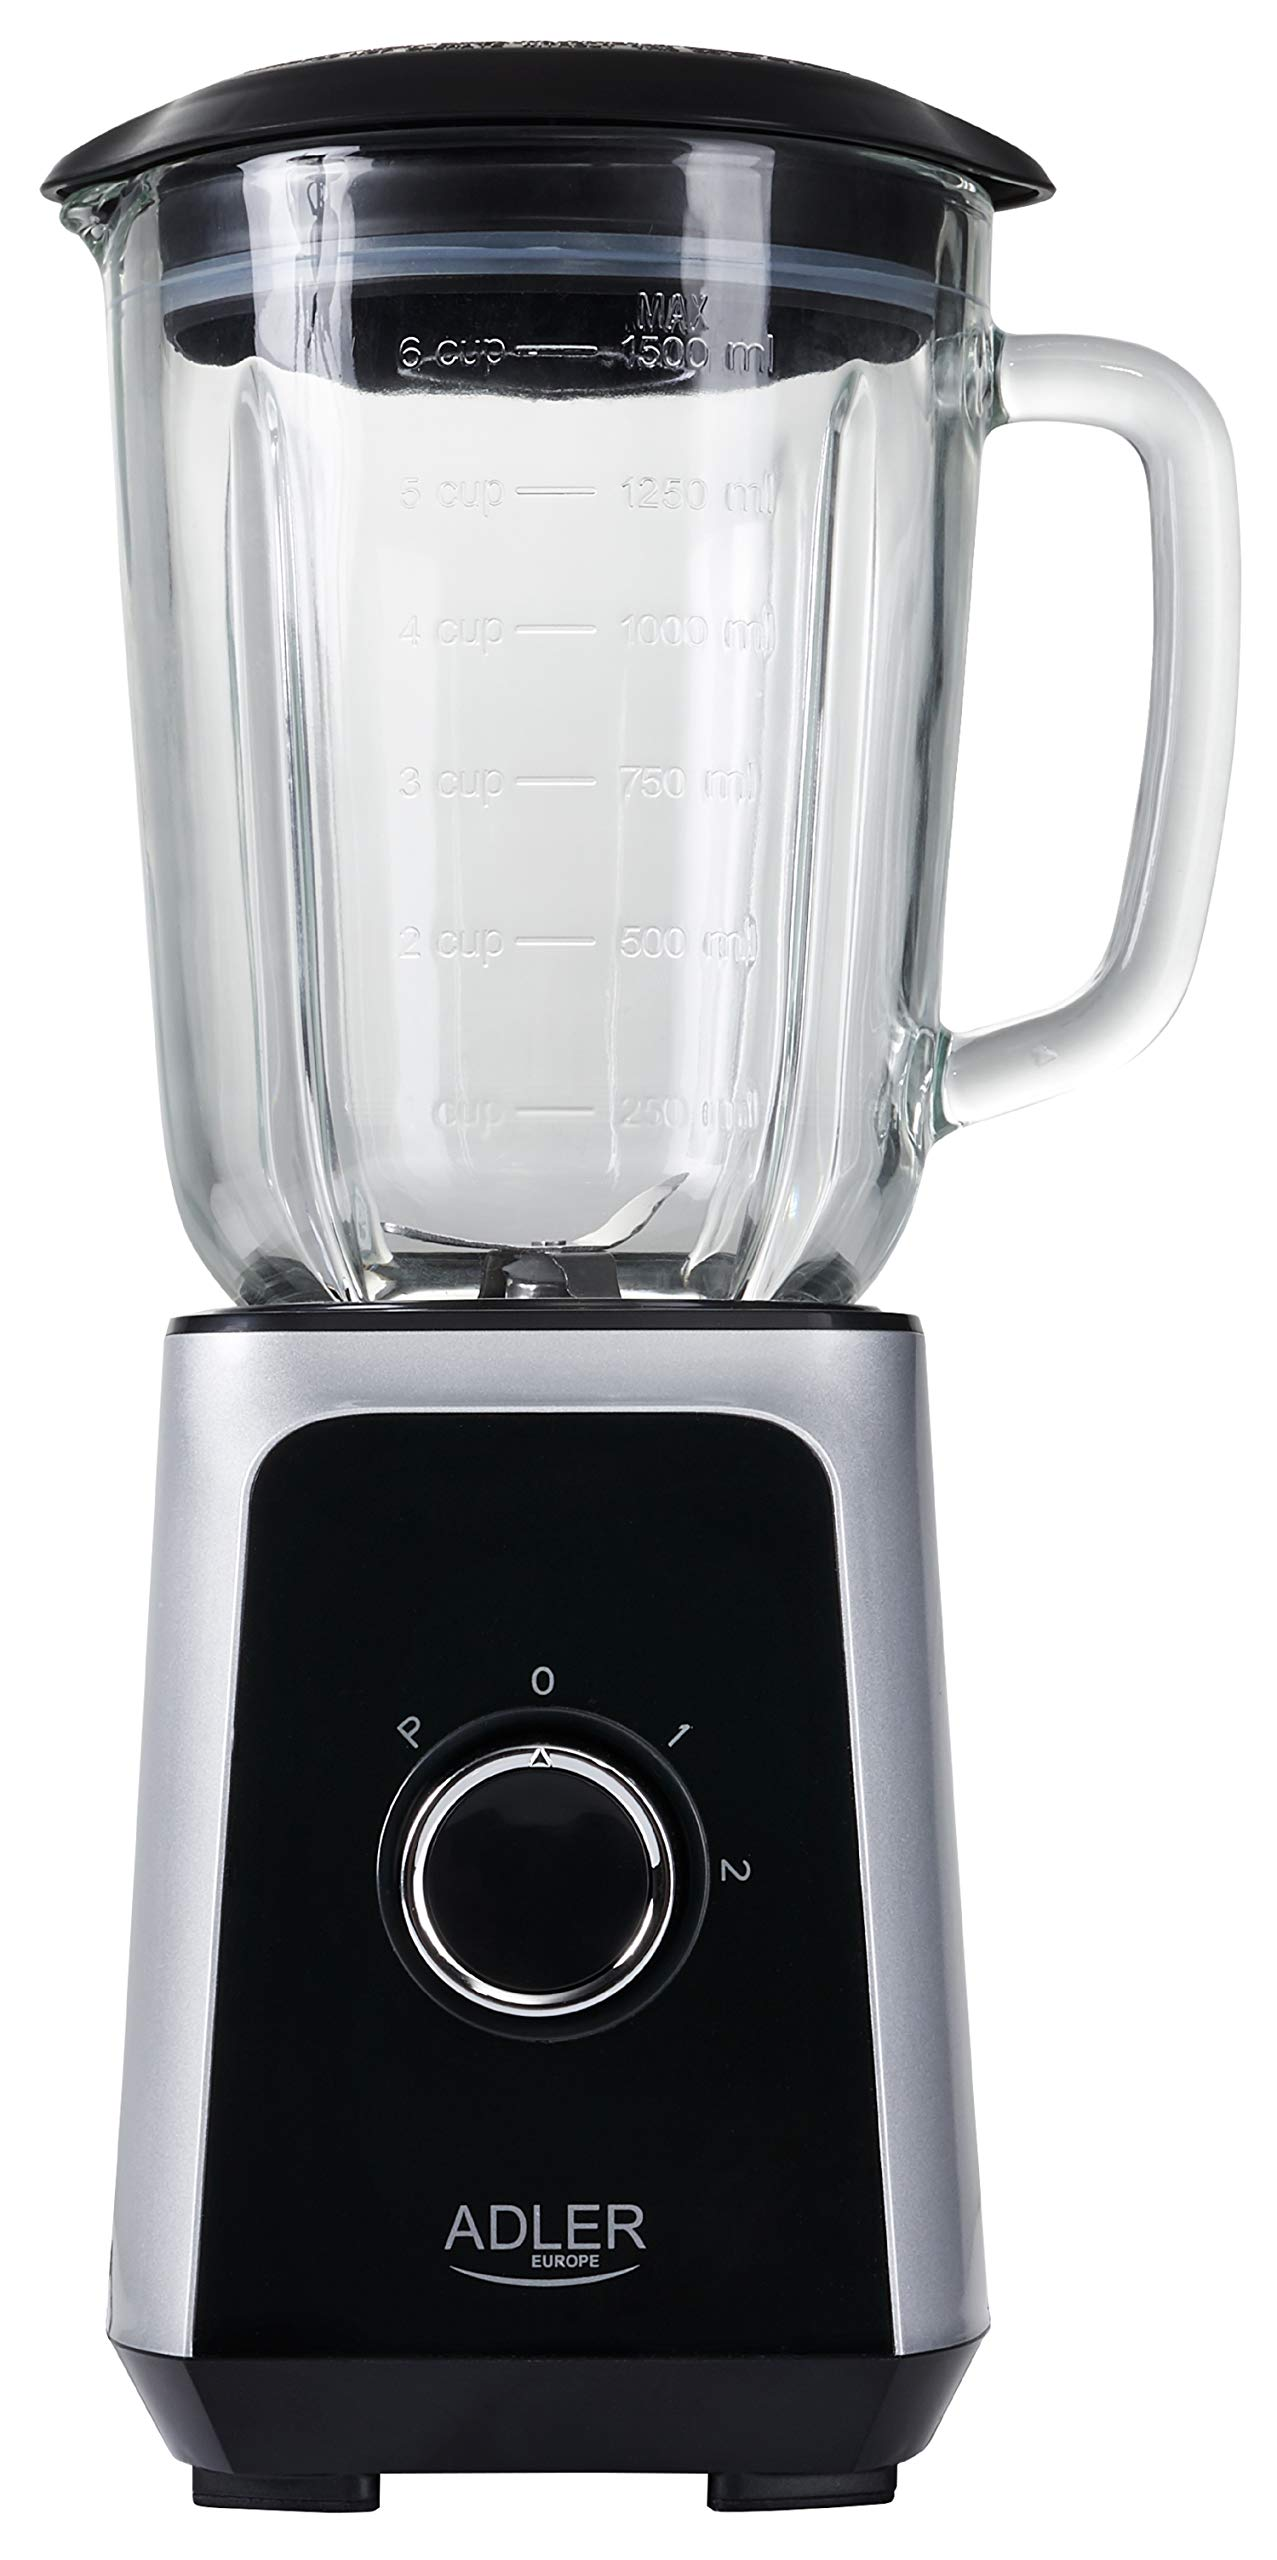 Edelstahl-Standmixer-1000-Watt-2-Geschwindigkeitsstufen-Impulsfunktion-Ice-Crusher-Deckel-mit-Nachfllffnung-Blender-Smoothie-Maker-Universal-Mixer